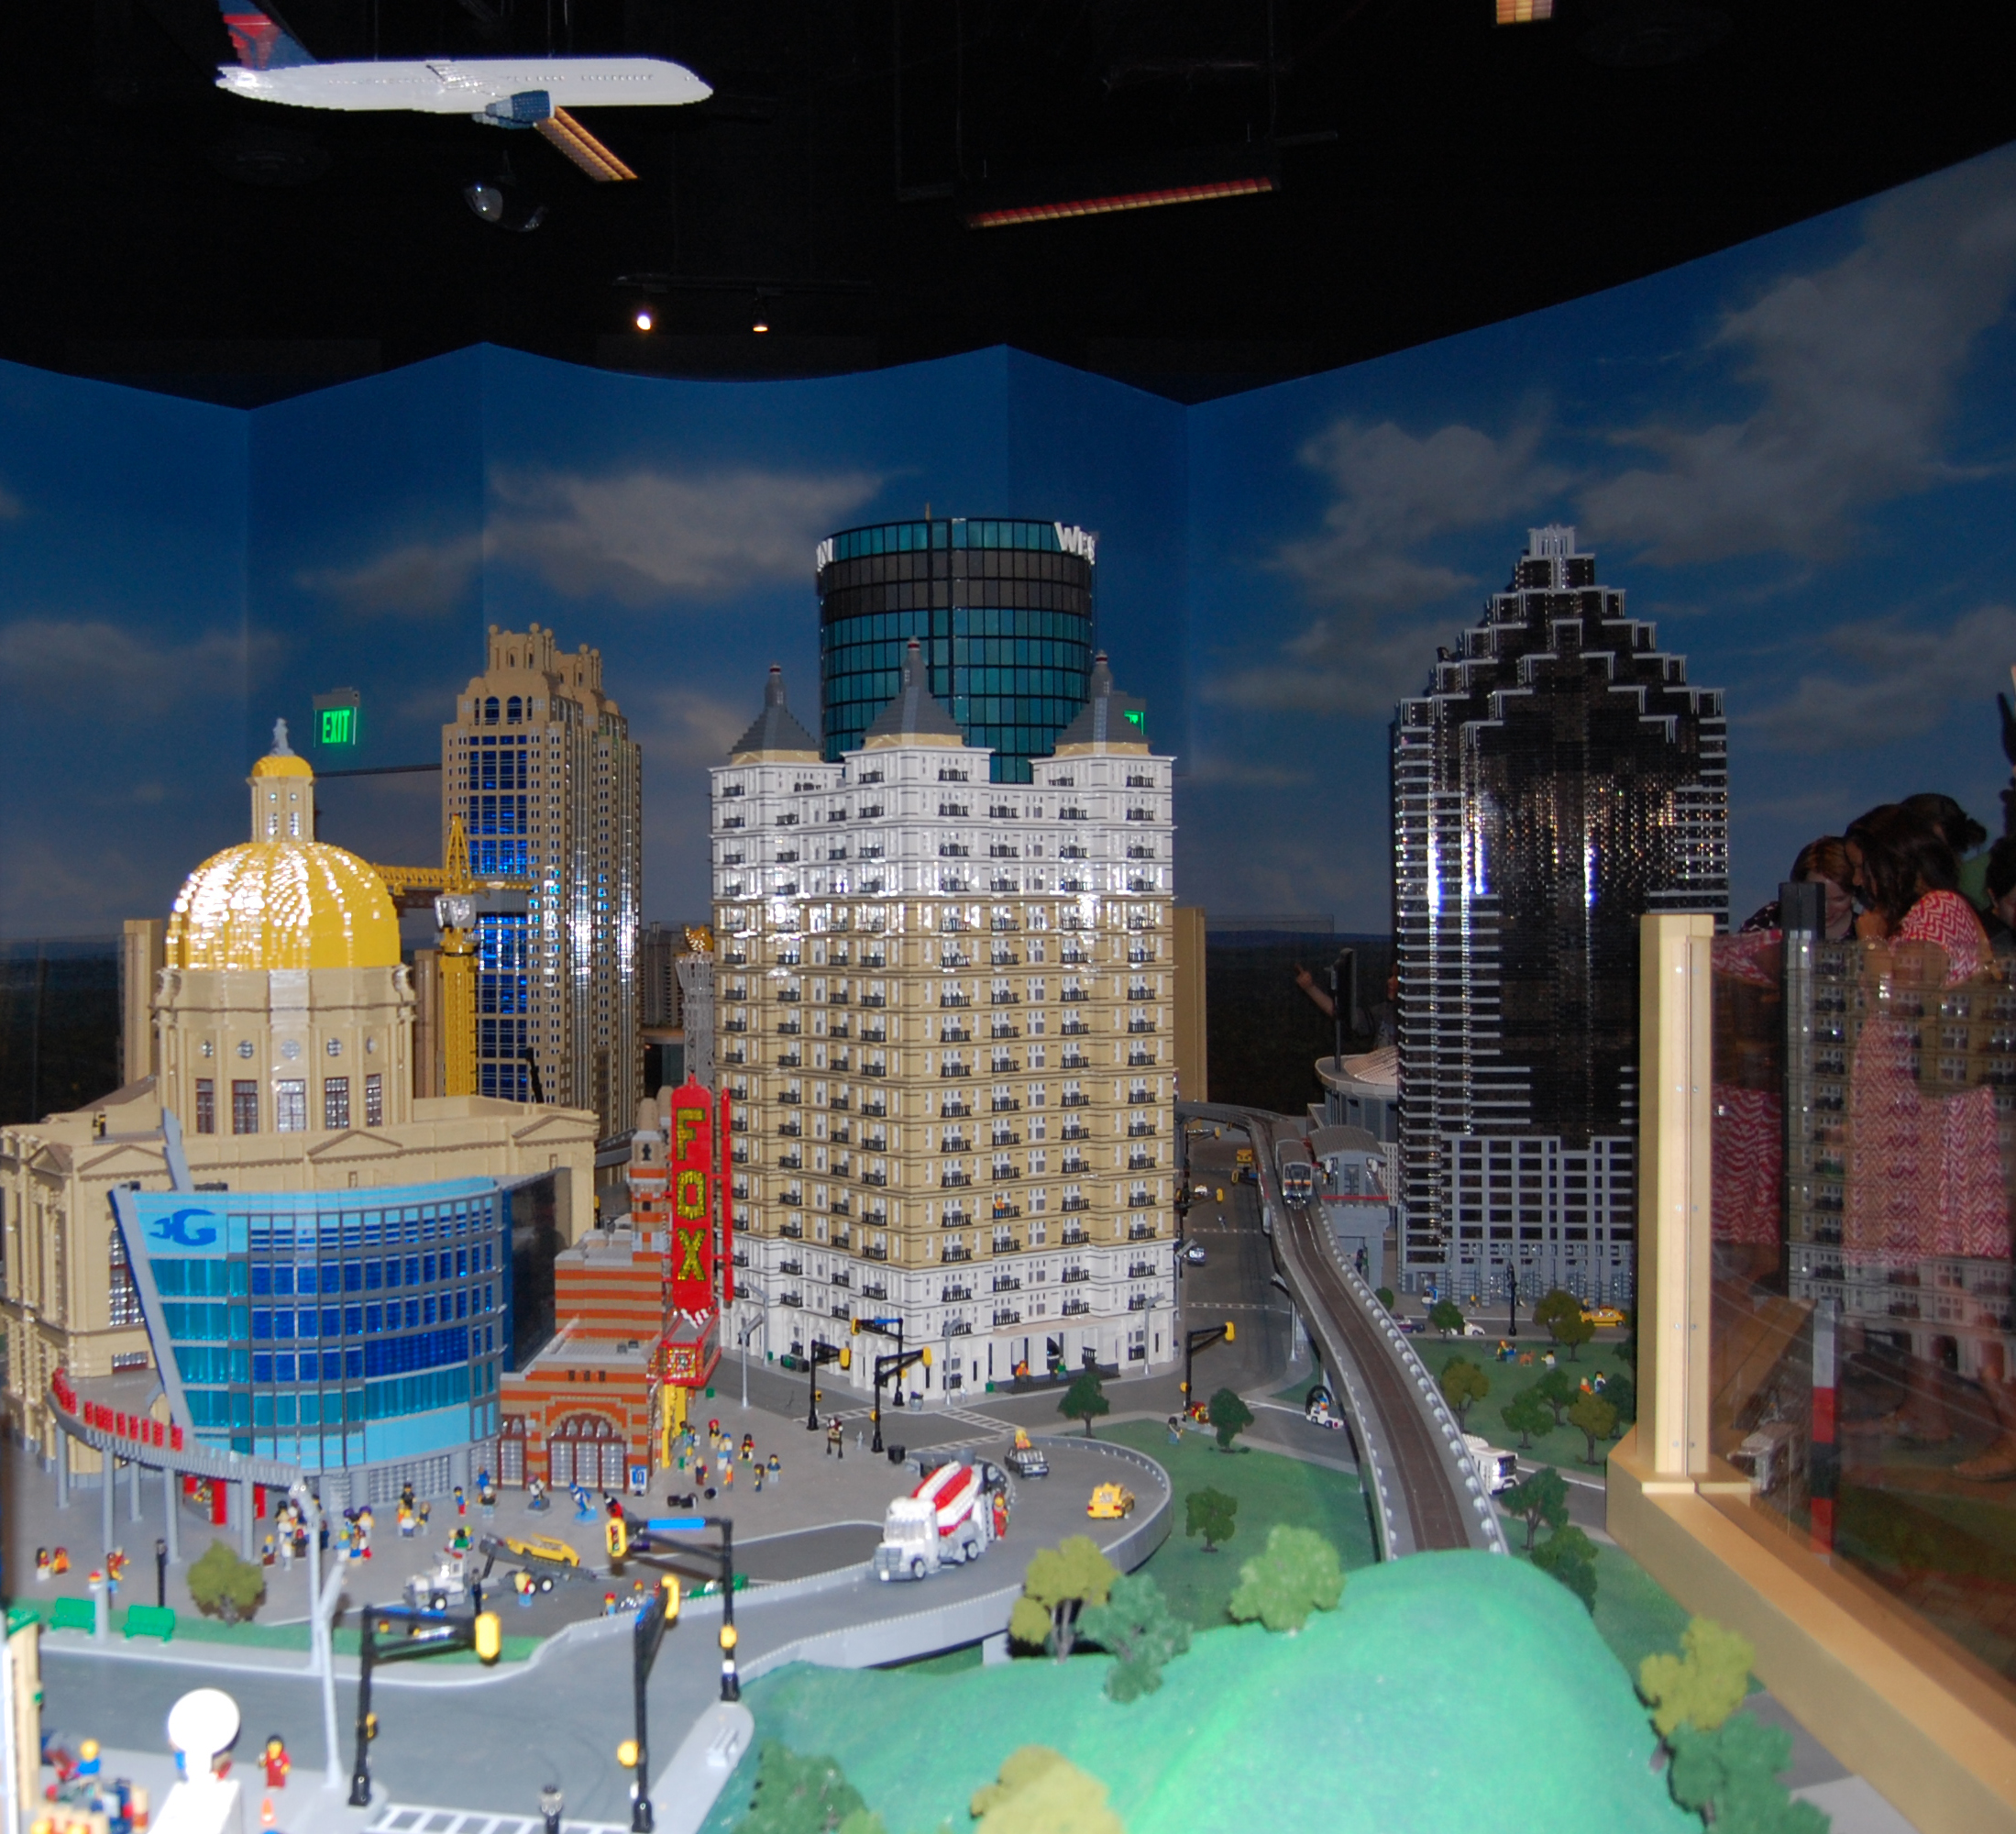 Photo by Olivia Klienman. LegoLand in Atlanta offers lots of lego fun for kids ages 3-10. One attraction at Legoland is the replica of Atlanta that was made out of 1.5 million lego pieces.